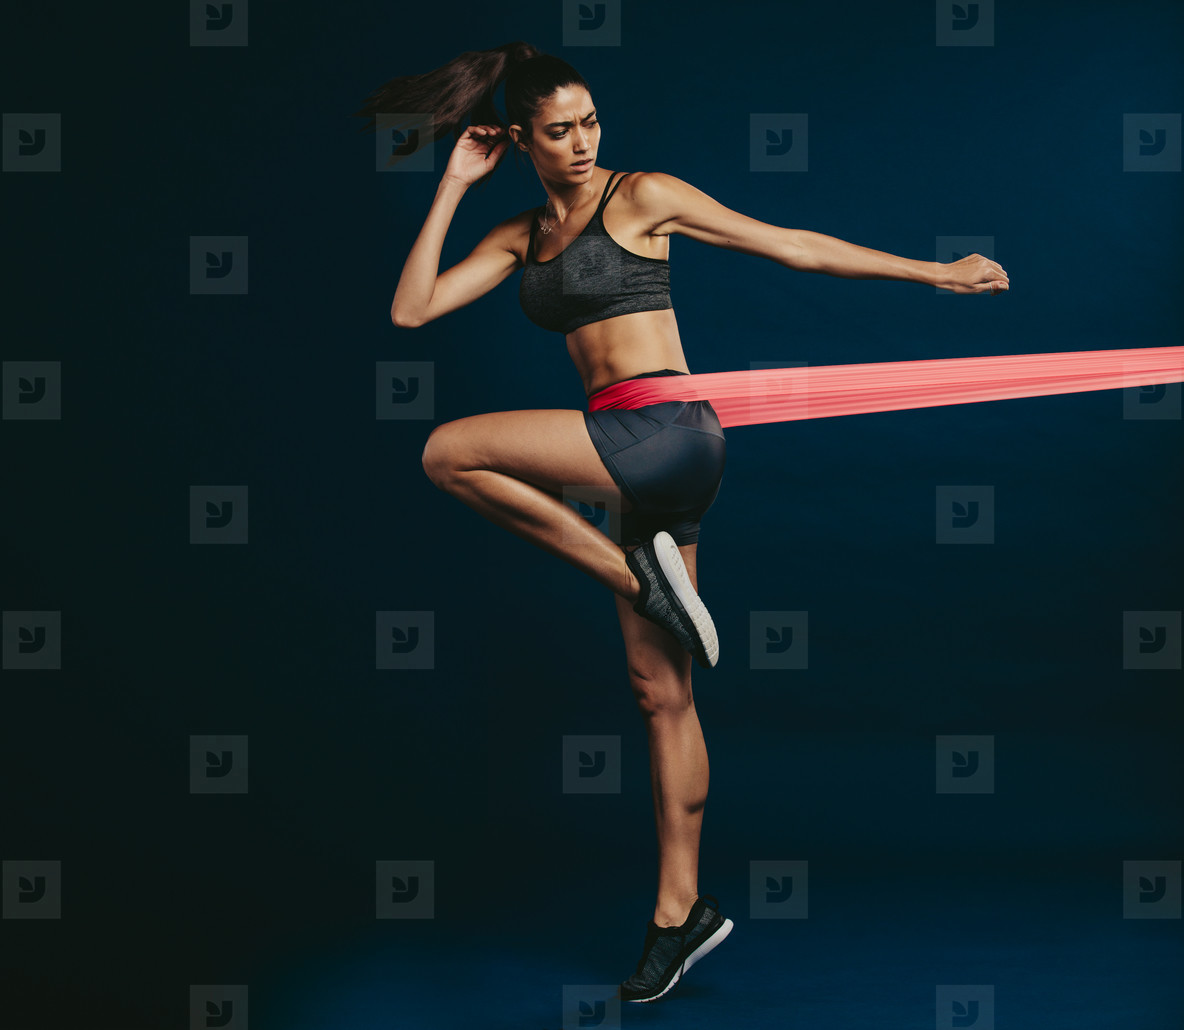 Healthy woman working out with resistance band